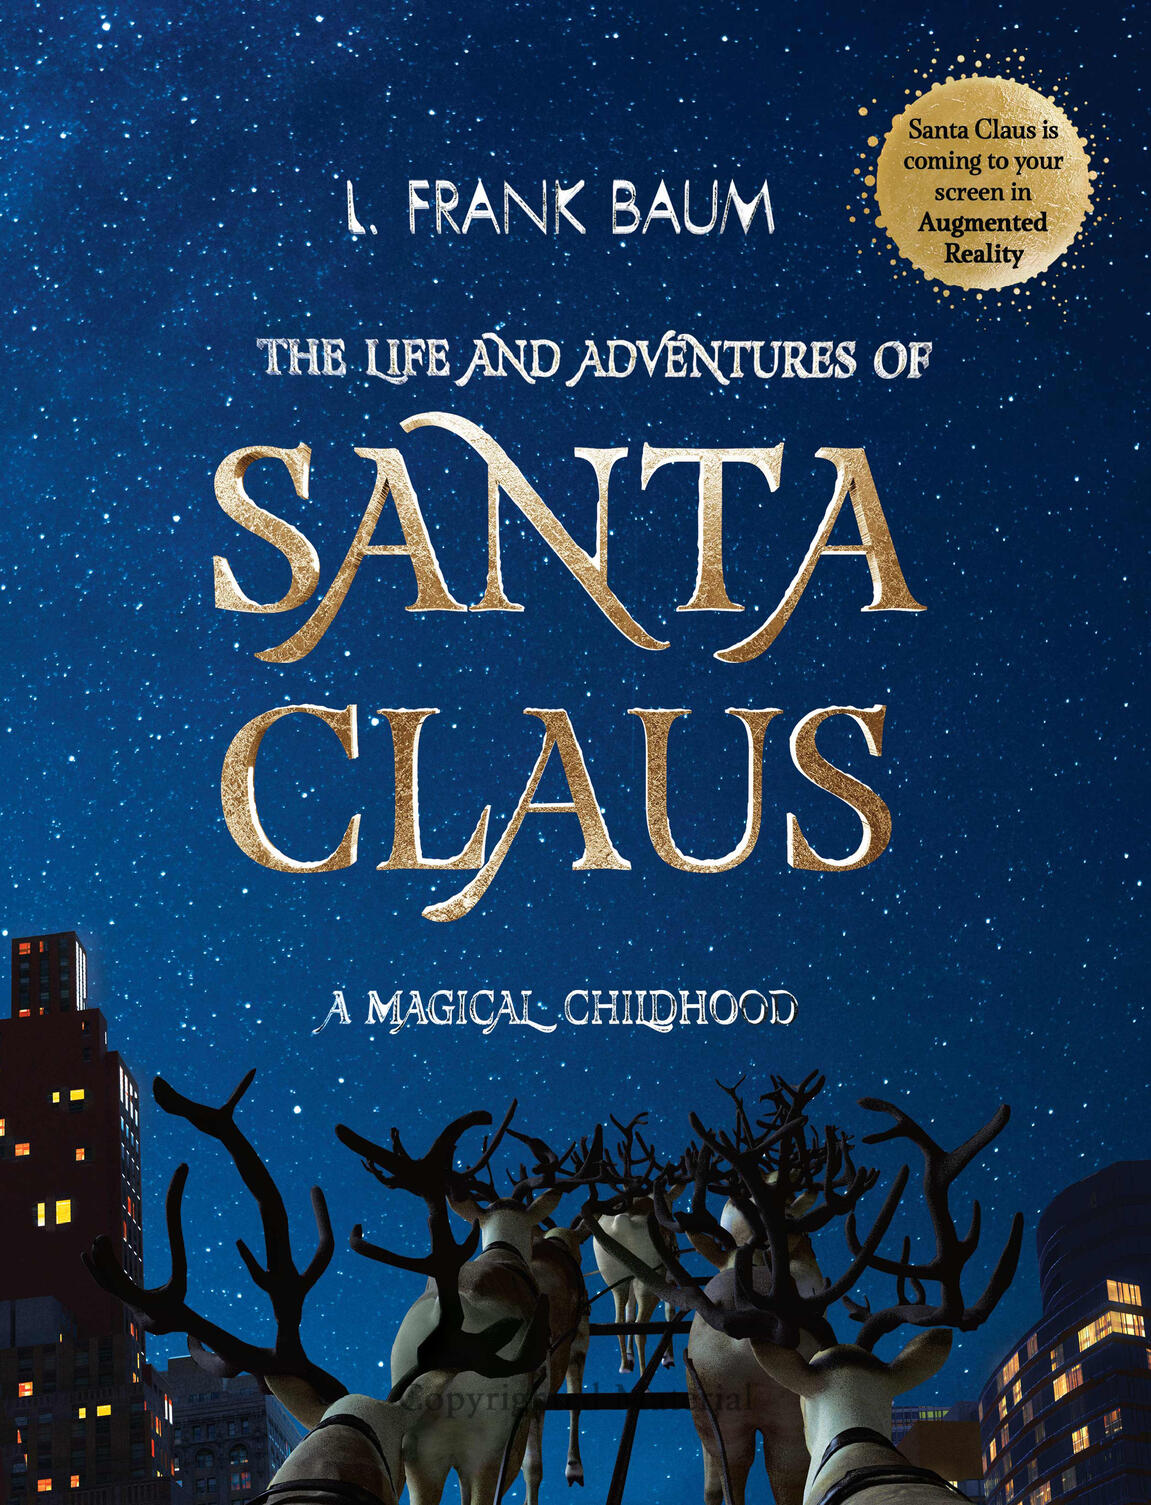 The Life and Adventures of Santa Claus. A Magical Childhood by L. Frank Baum - Land of Tales